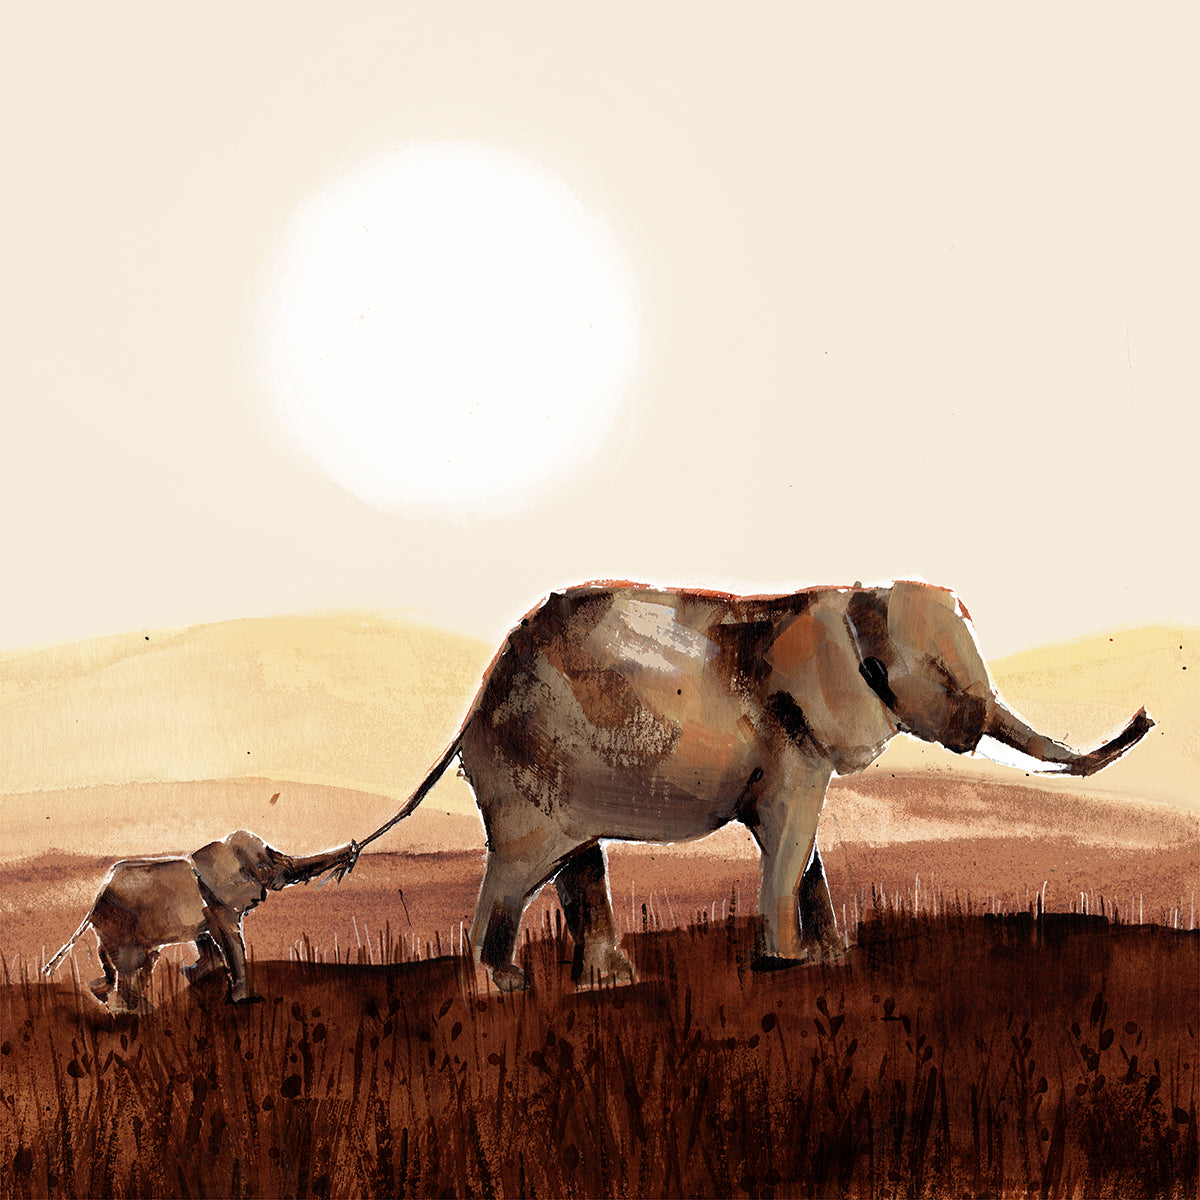 Mum and Baby Elephant illustration at Sunset